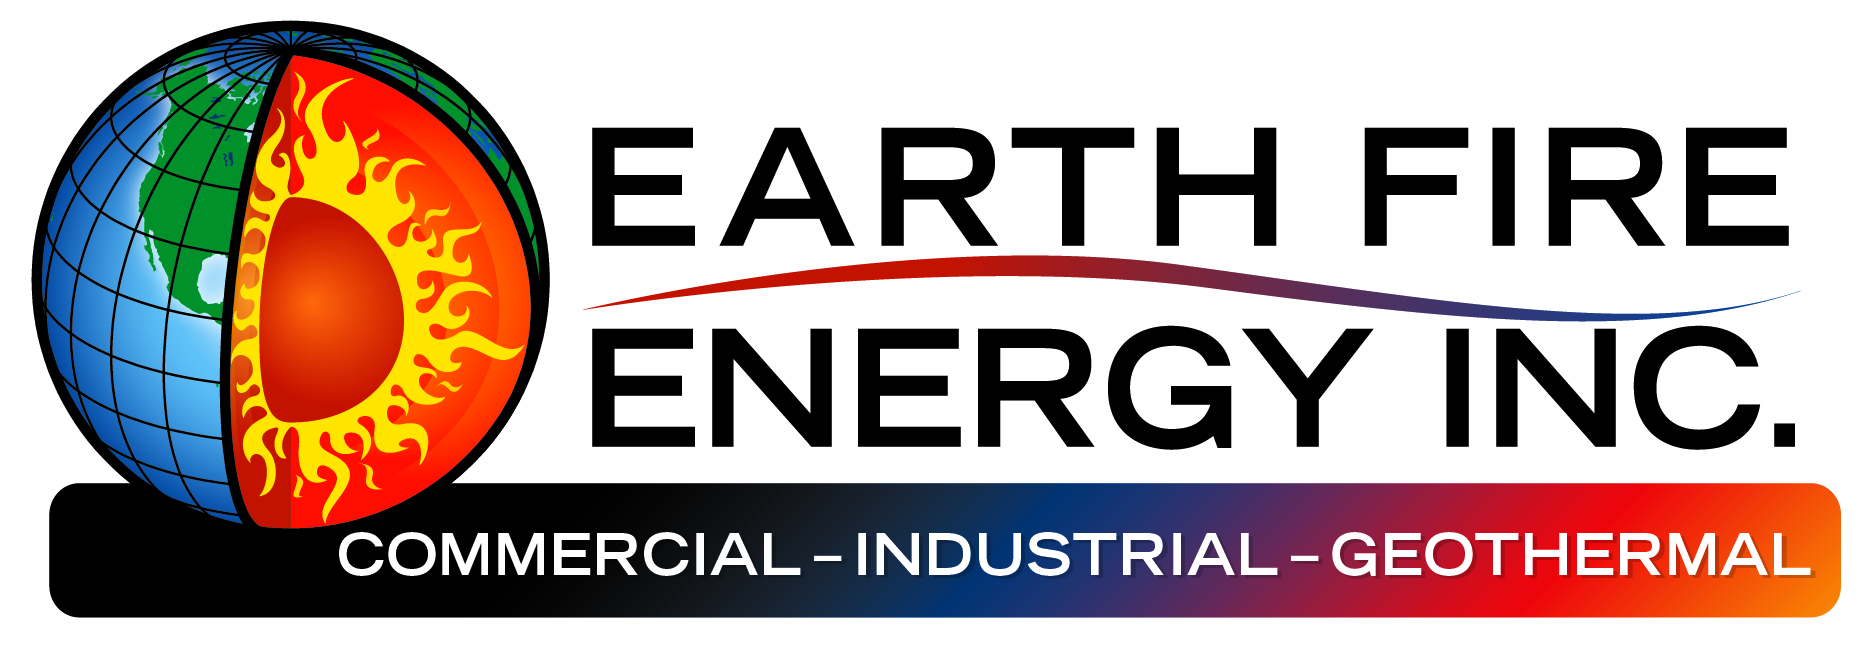 EARTH FIRE ENERGY INC logo